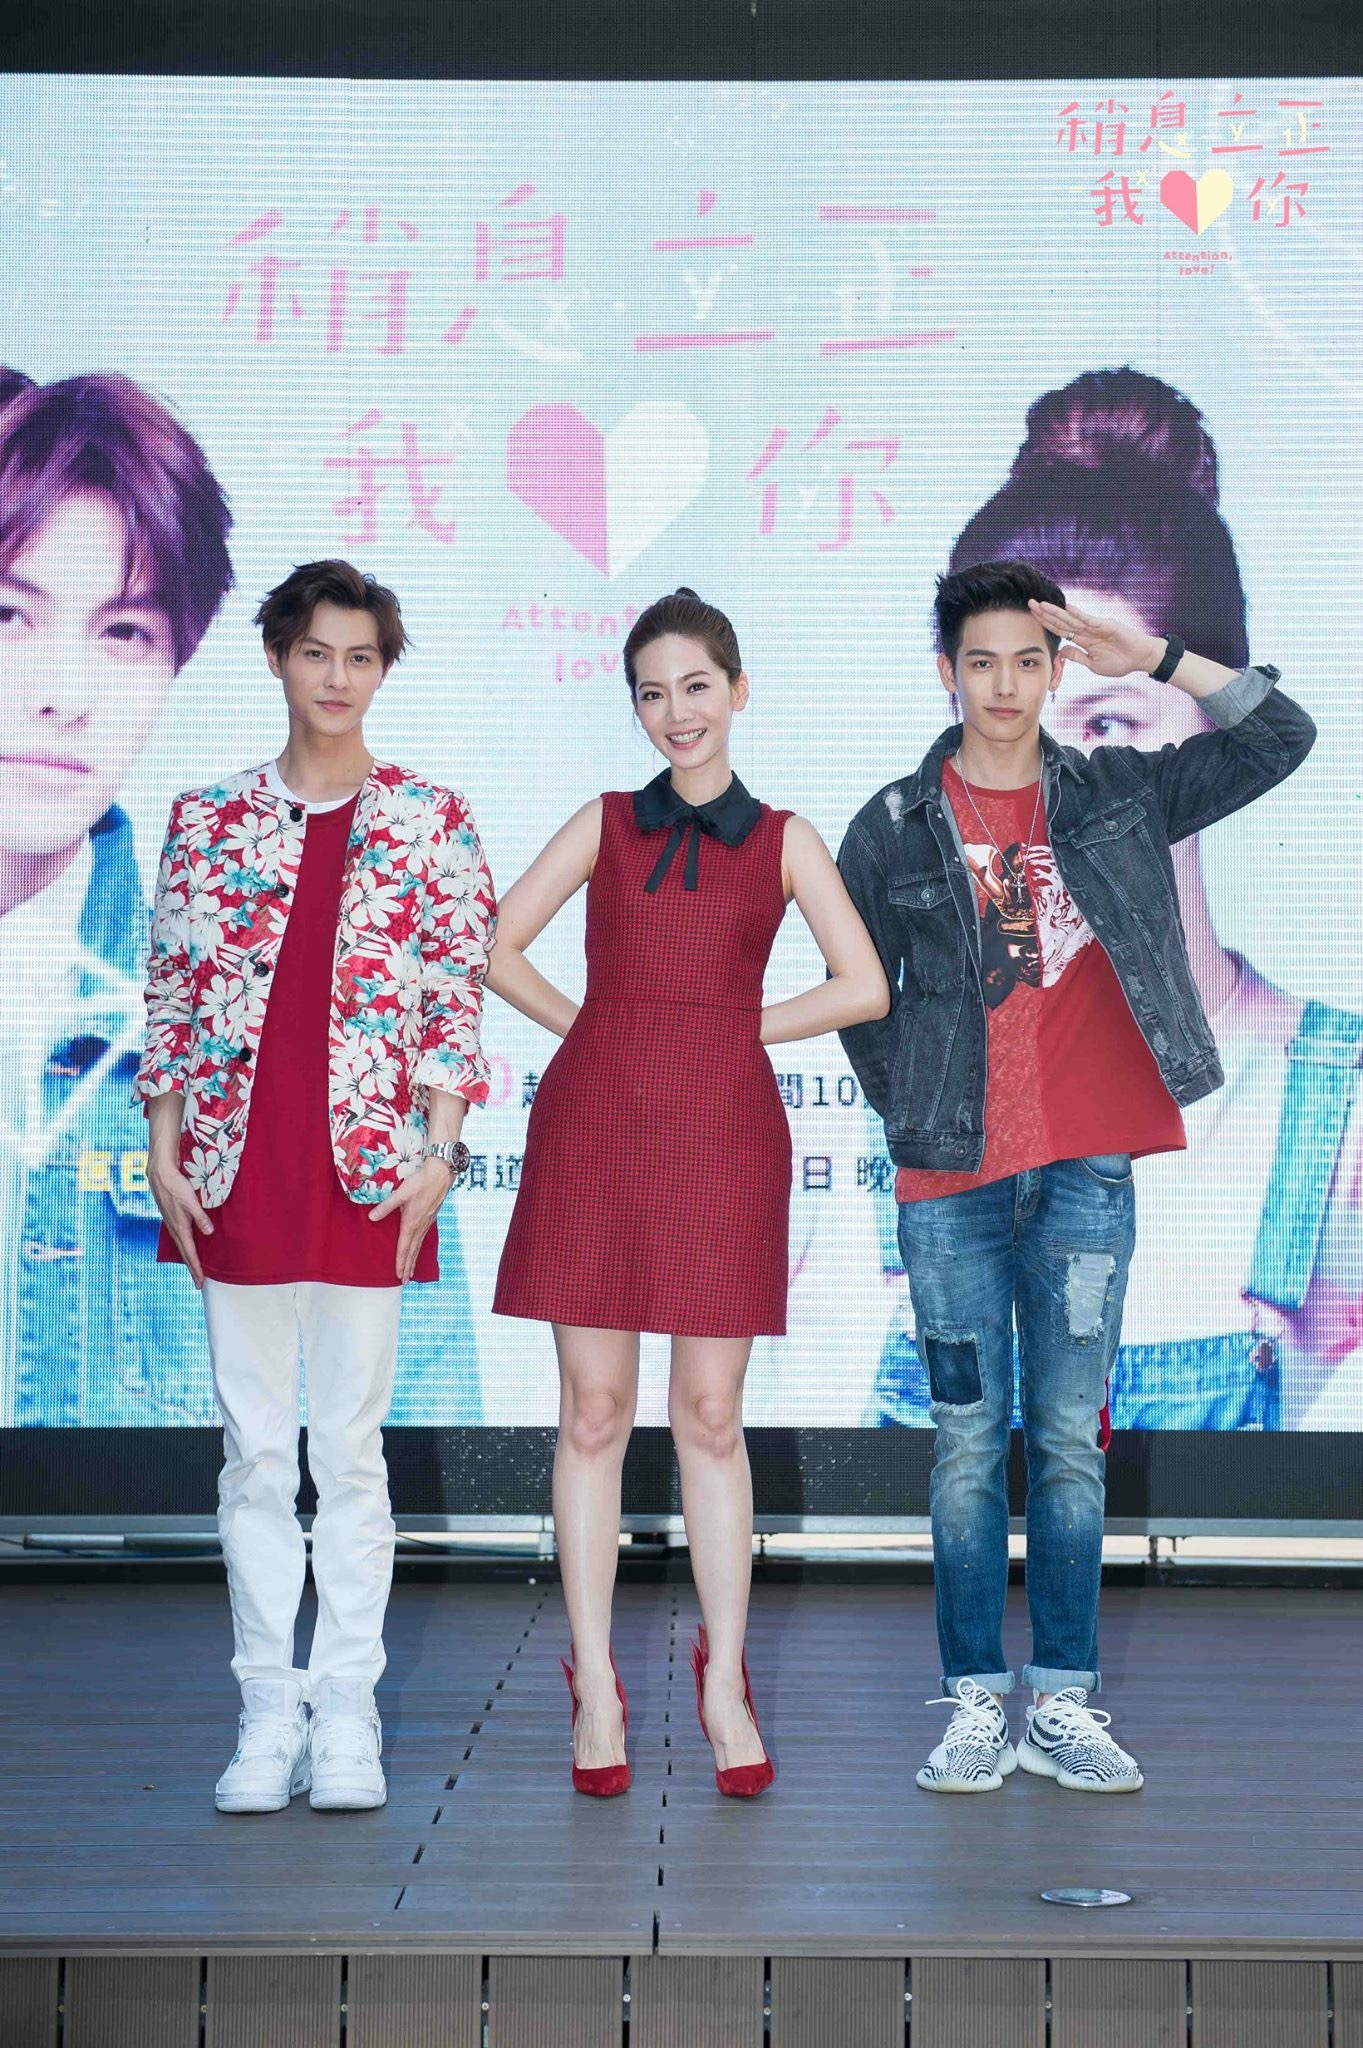 Joanne Tseng, Prince Chiu, and Riley Wang at an event for Attention, Love! (2017)